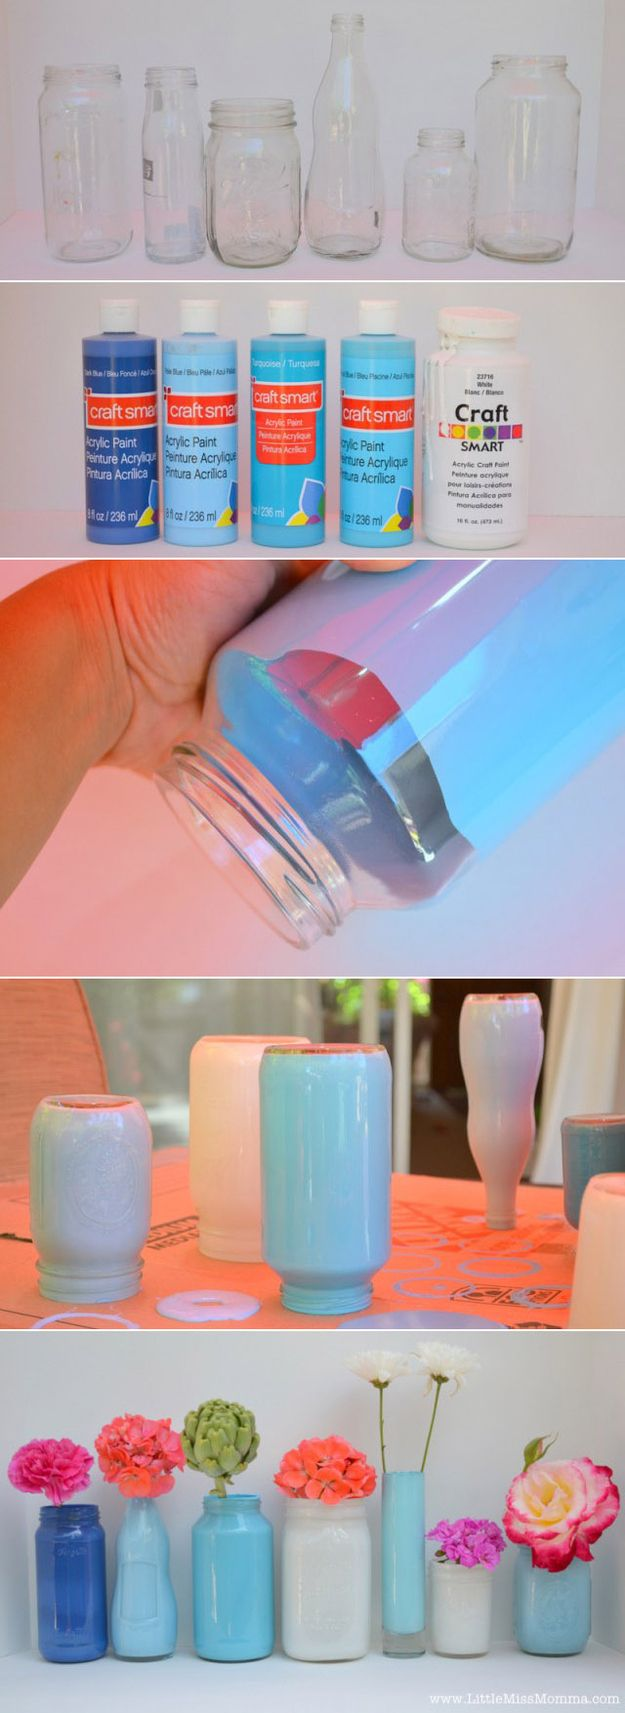 41 ideas for mason jars, i wish i could just live in a mason jar.